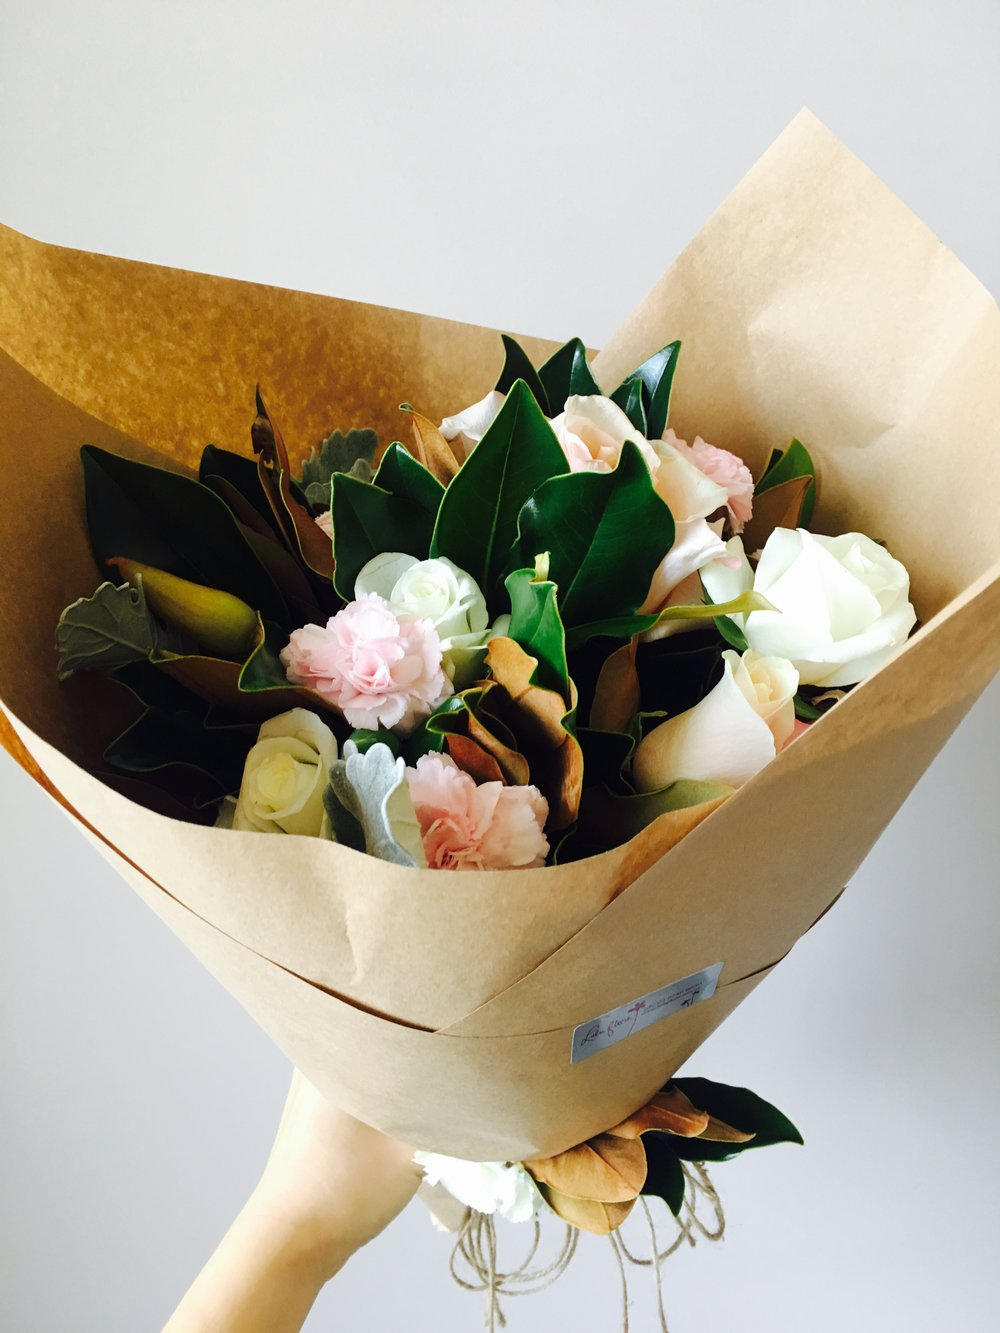 Surprise congratulatory flowers @Luluflora @inaloveyoon